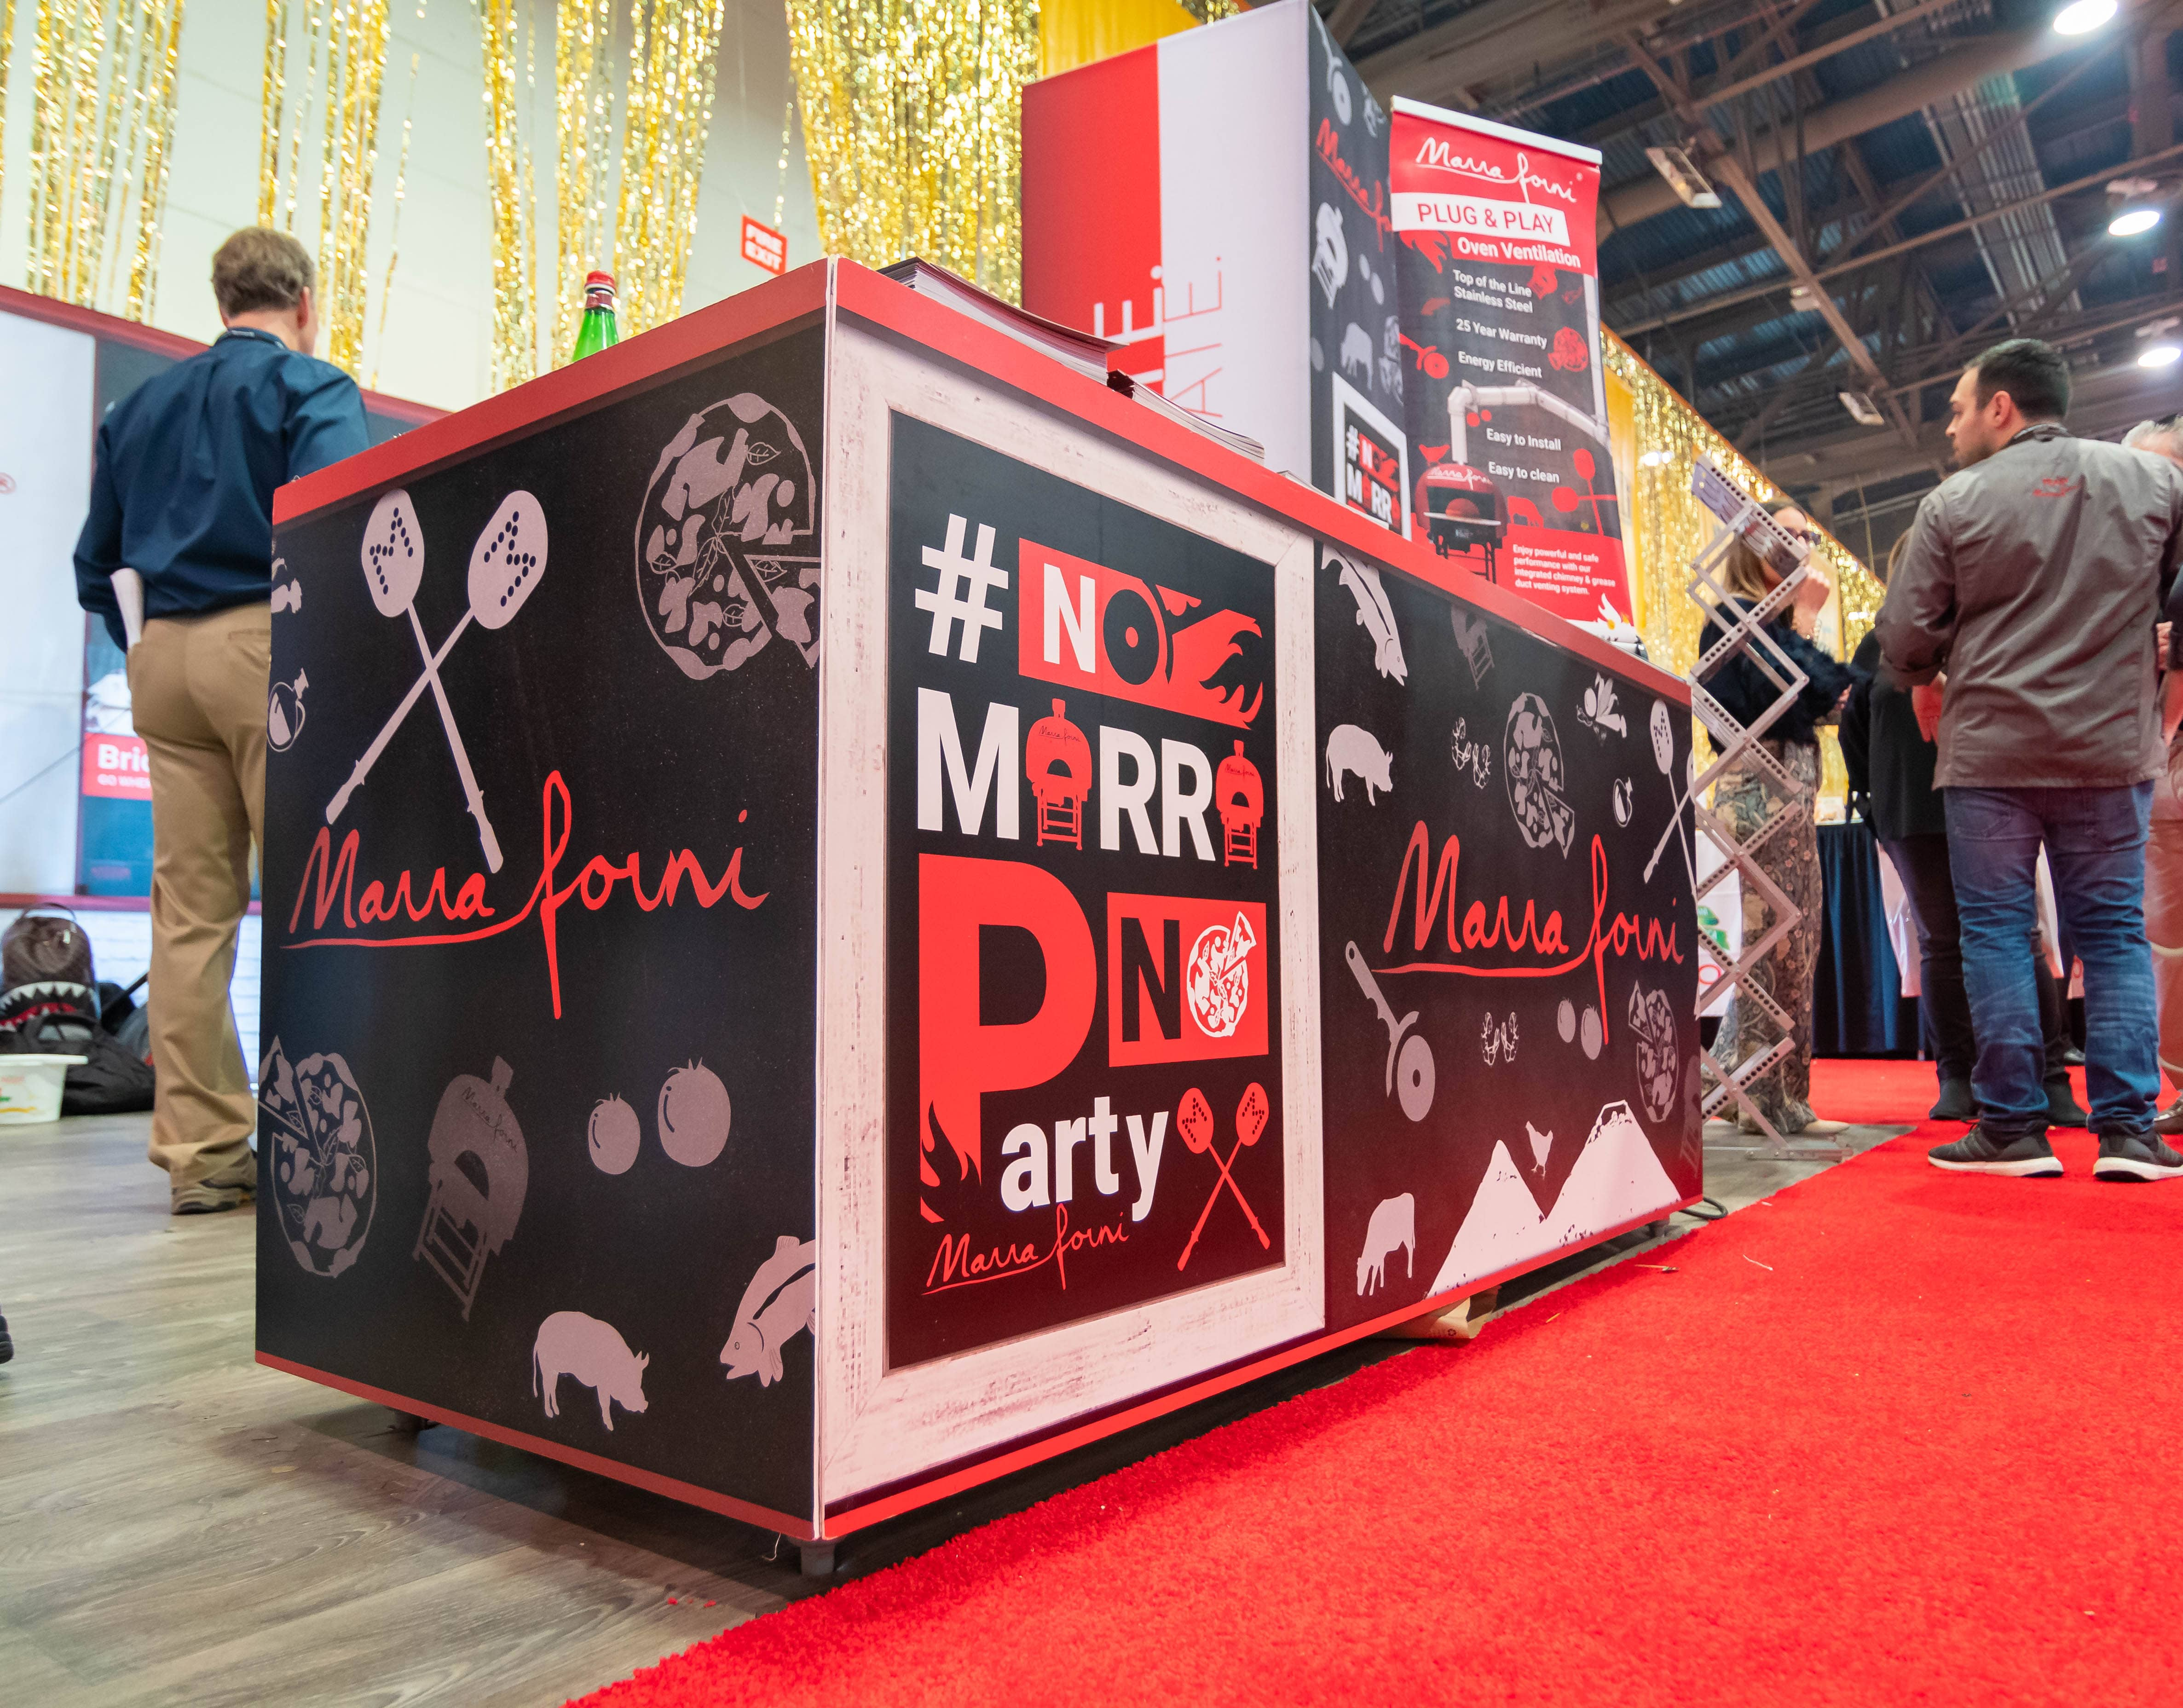 Marra Forni Booth Decorations at Pizza Expo 2019